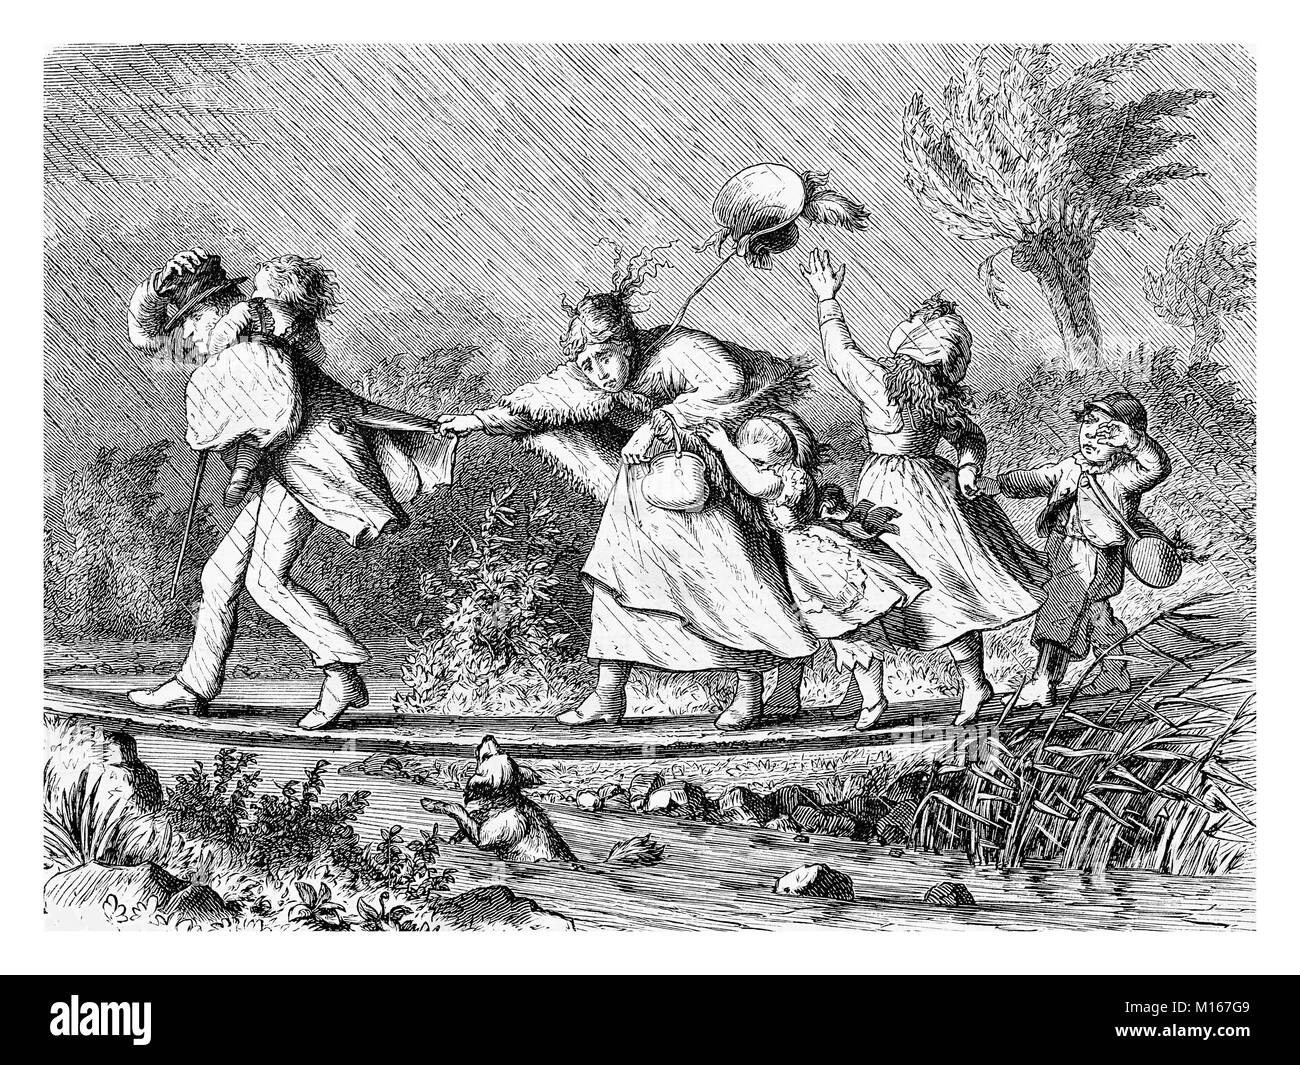 Family at the first spring excursion under the rain, vintage engraving - Stock Image